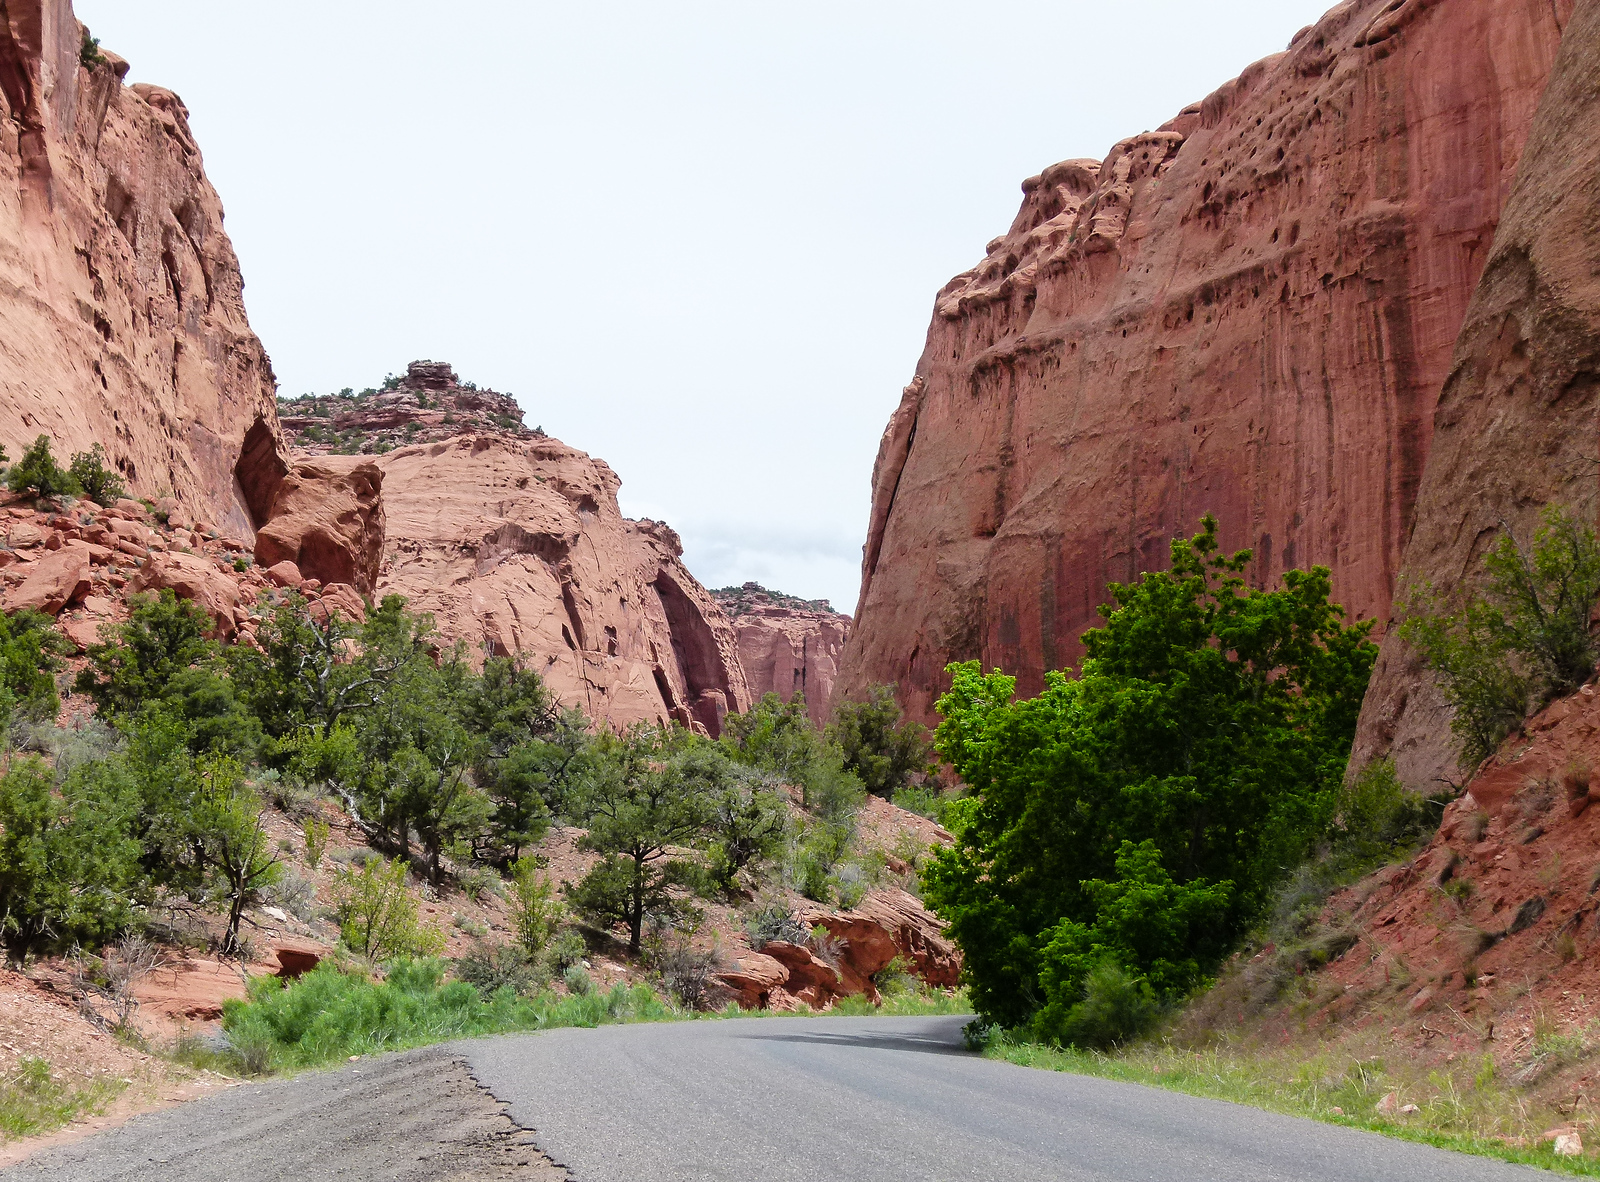 The paved portion of the scenic Burr Trail travels between the pink walls of Long Canyon in Southern Utah.